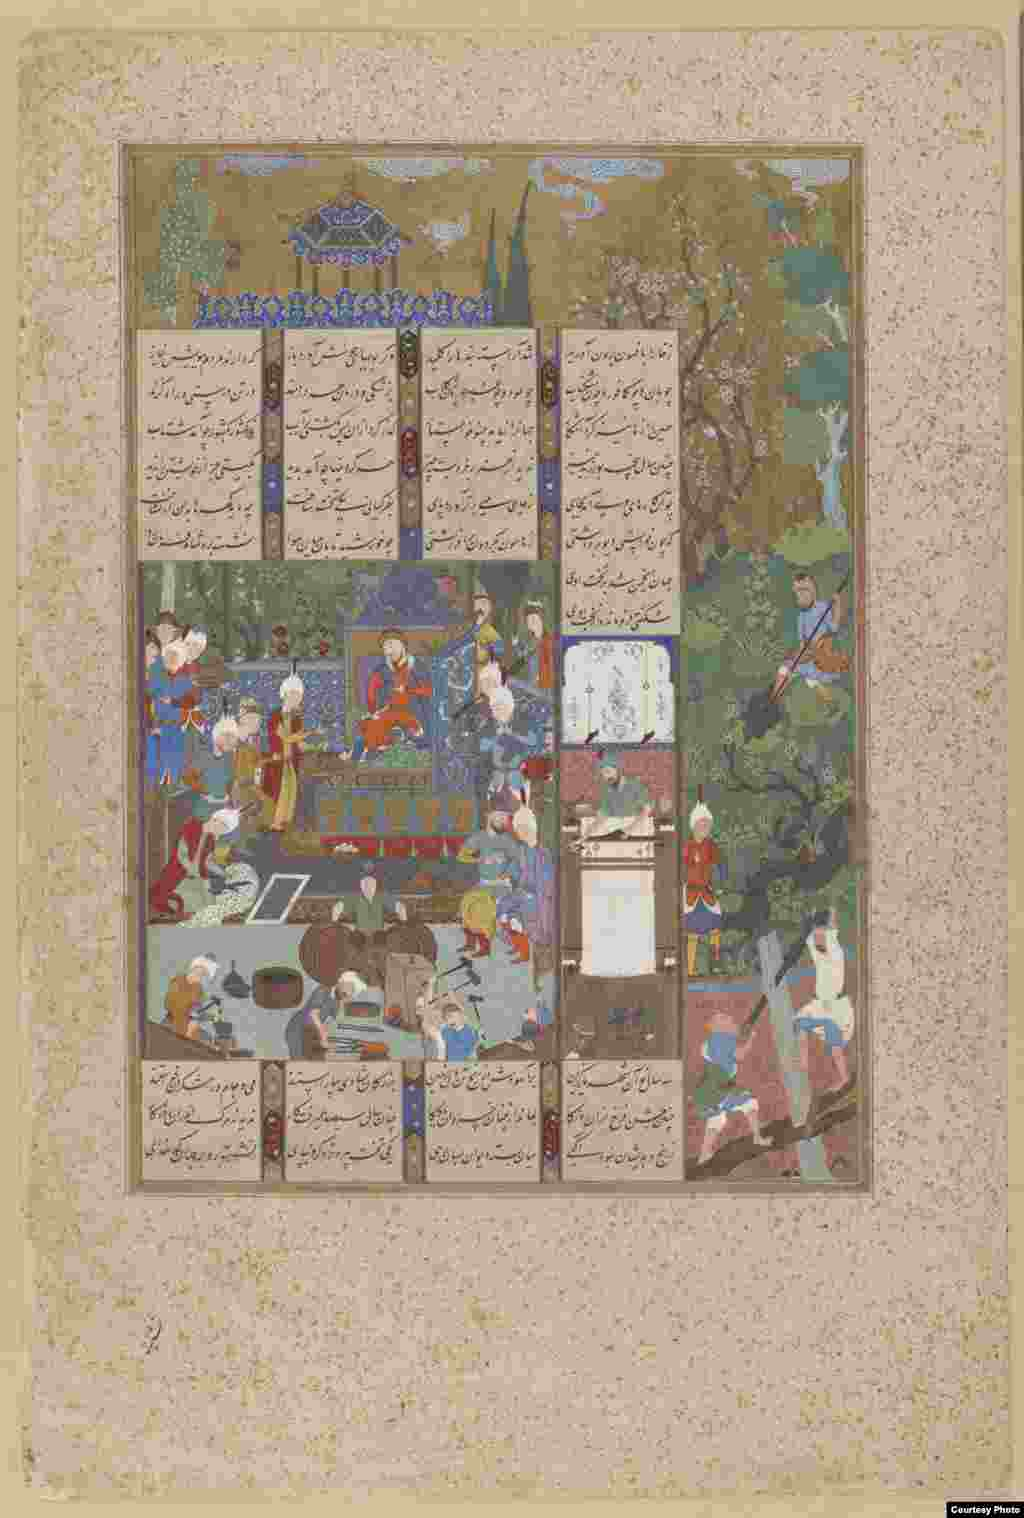 "The opulent court of King Jamshid, who, as the legend has it, ruled for 700 years. ""The Court Of Jamshid,"" Tabriz, Iran, circa 1520s, from ""The Shahnameh"" (Book of Kings) by Firdawsi Photos courtesy of the Smithsonian Institute, Washington, D.C."